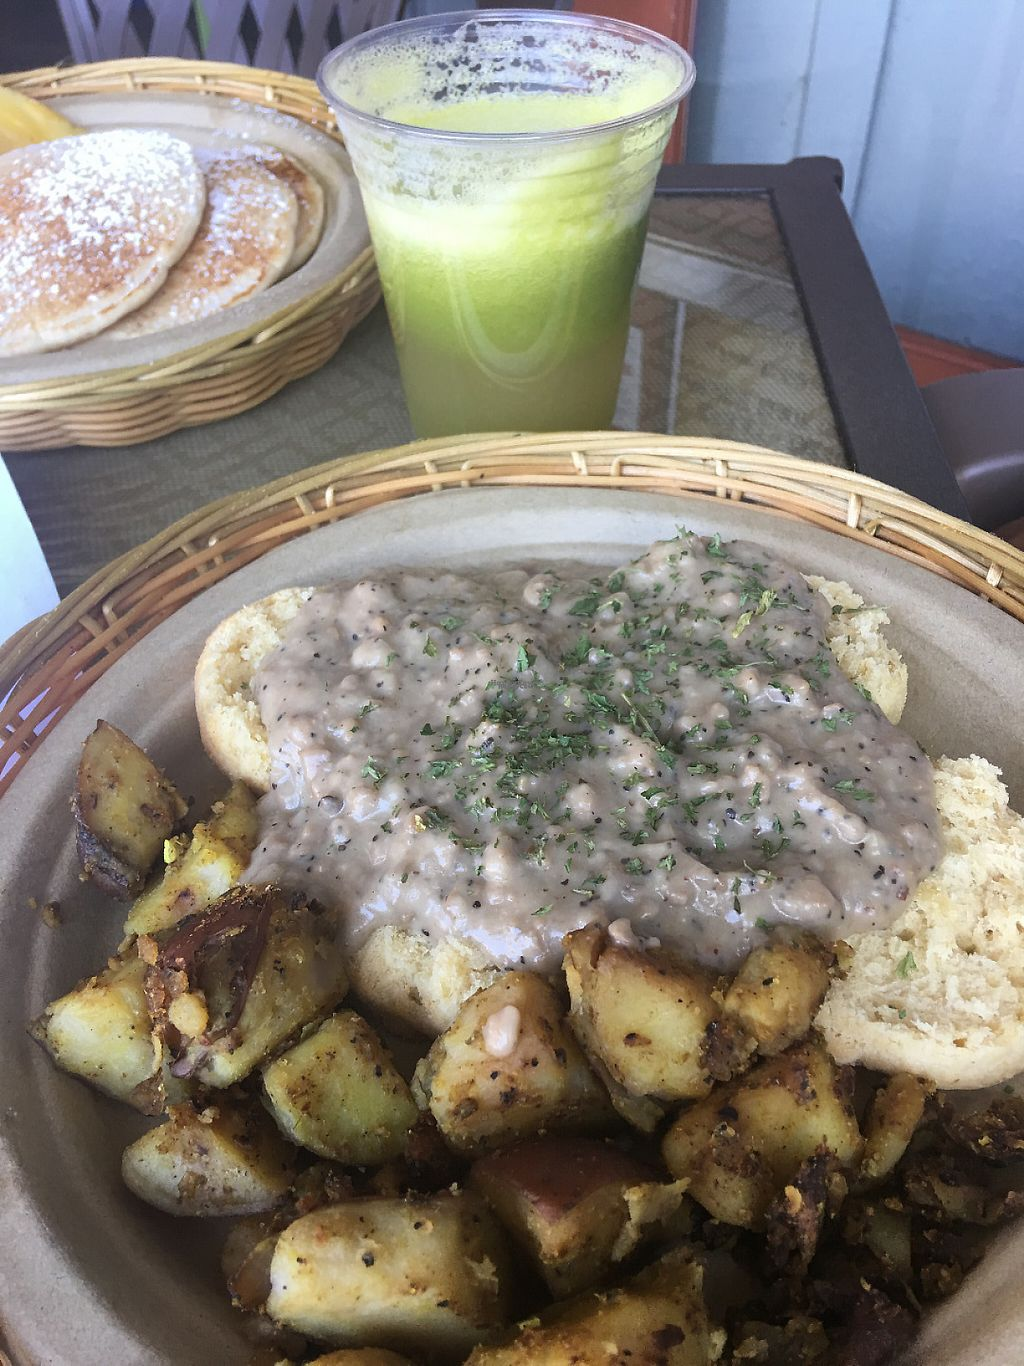 """Photo of Evolution Bakery and Cafe  by <a href=""""/members/profile/myra975"""">myra975</a> <br/>Biscuits & Gravy <br/> March 14, 2017  - <a href='/contact/abuse/image/43352/236491'>Report</a>"""